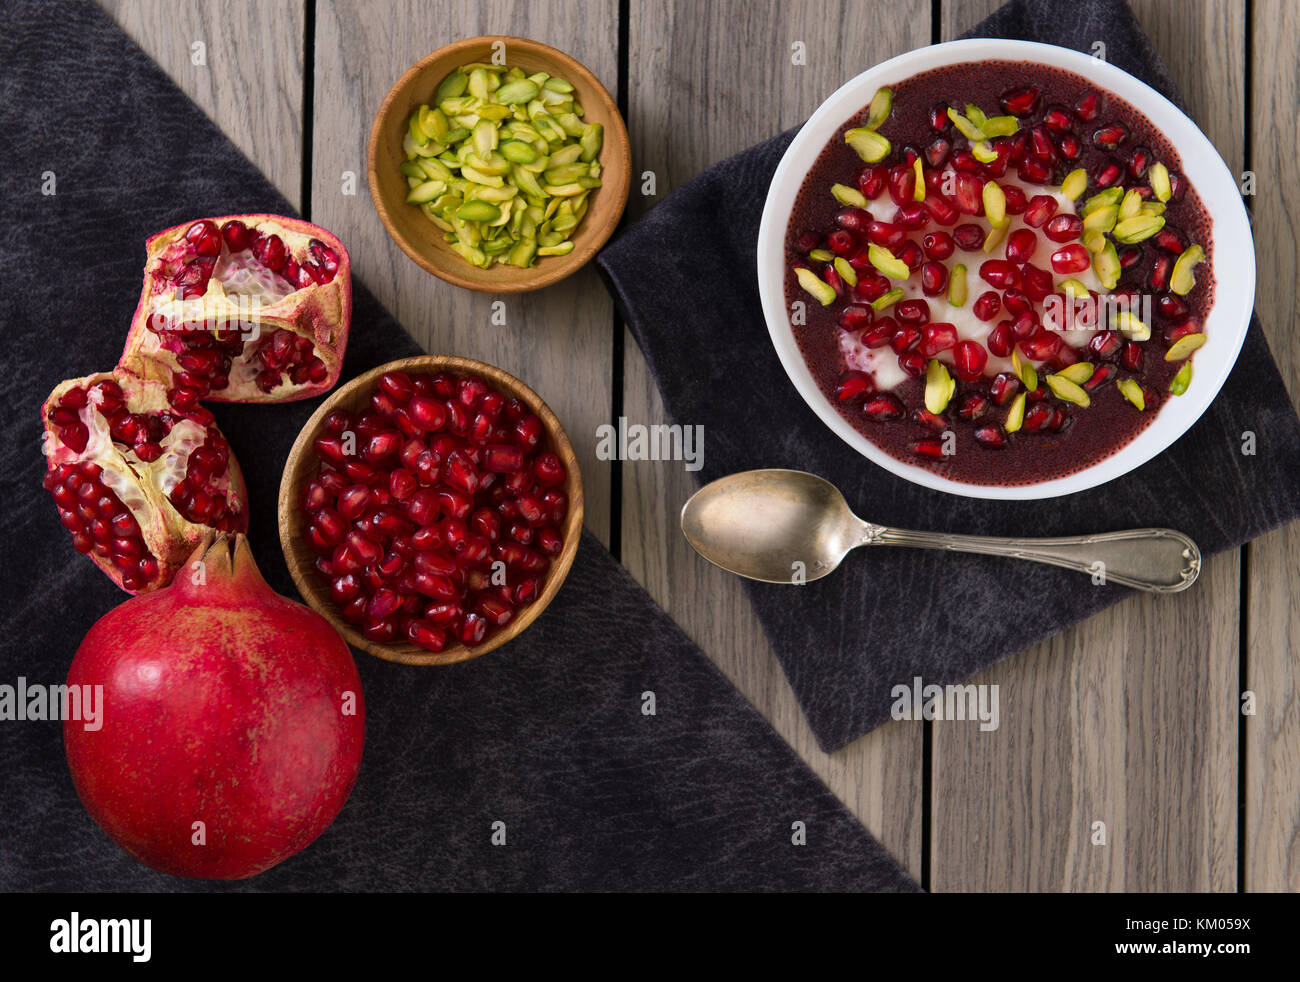 Pomegranate desert with Chia Seed, tapioca pudding and Yogurt. healthy eating. top view. - Stock Image